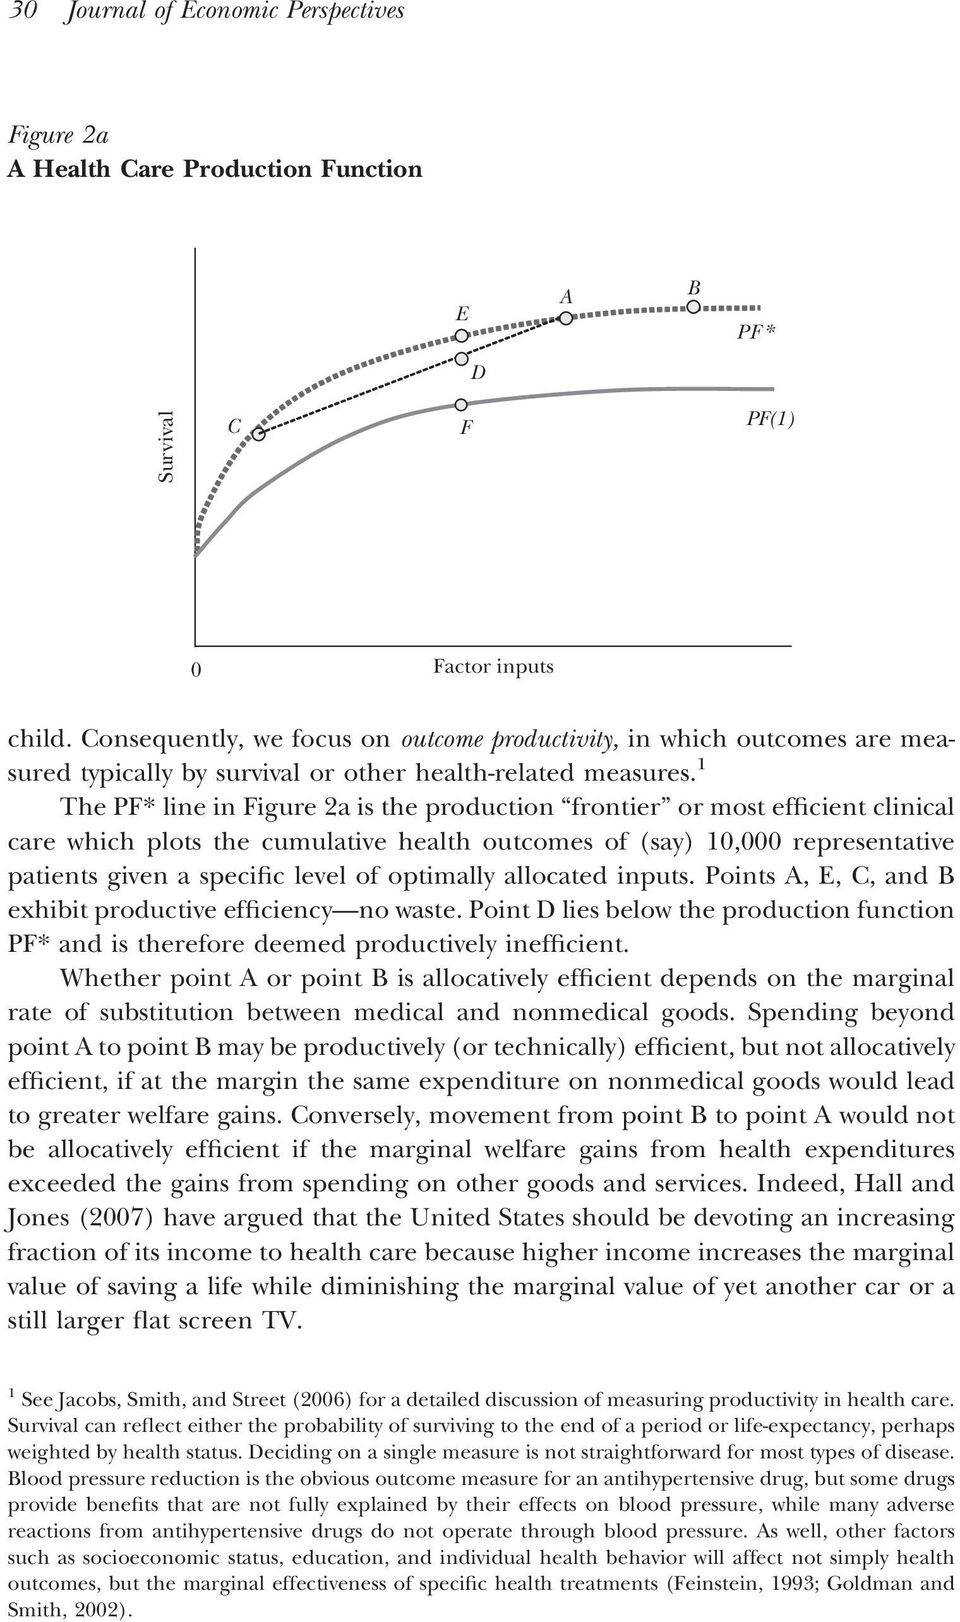 1 The PF* line in Figure 2a is the production frontier or most efficient clinical care which plots the cumulative health outcomes of (say) 10,000 representative patients given a specific level of